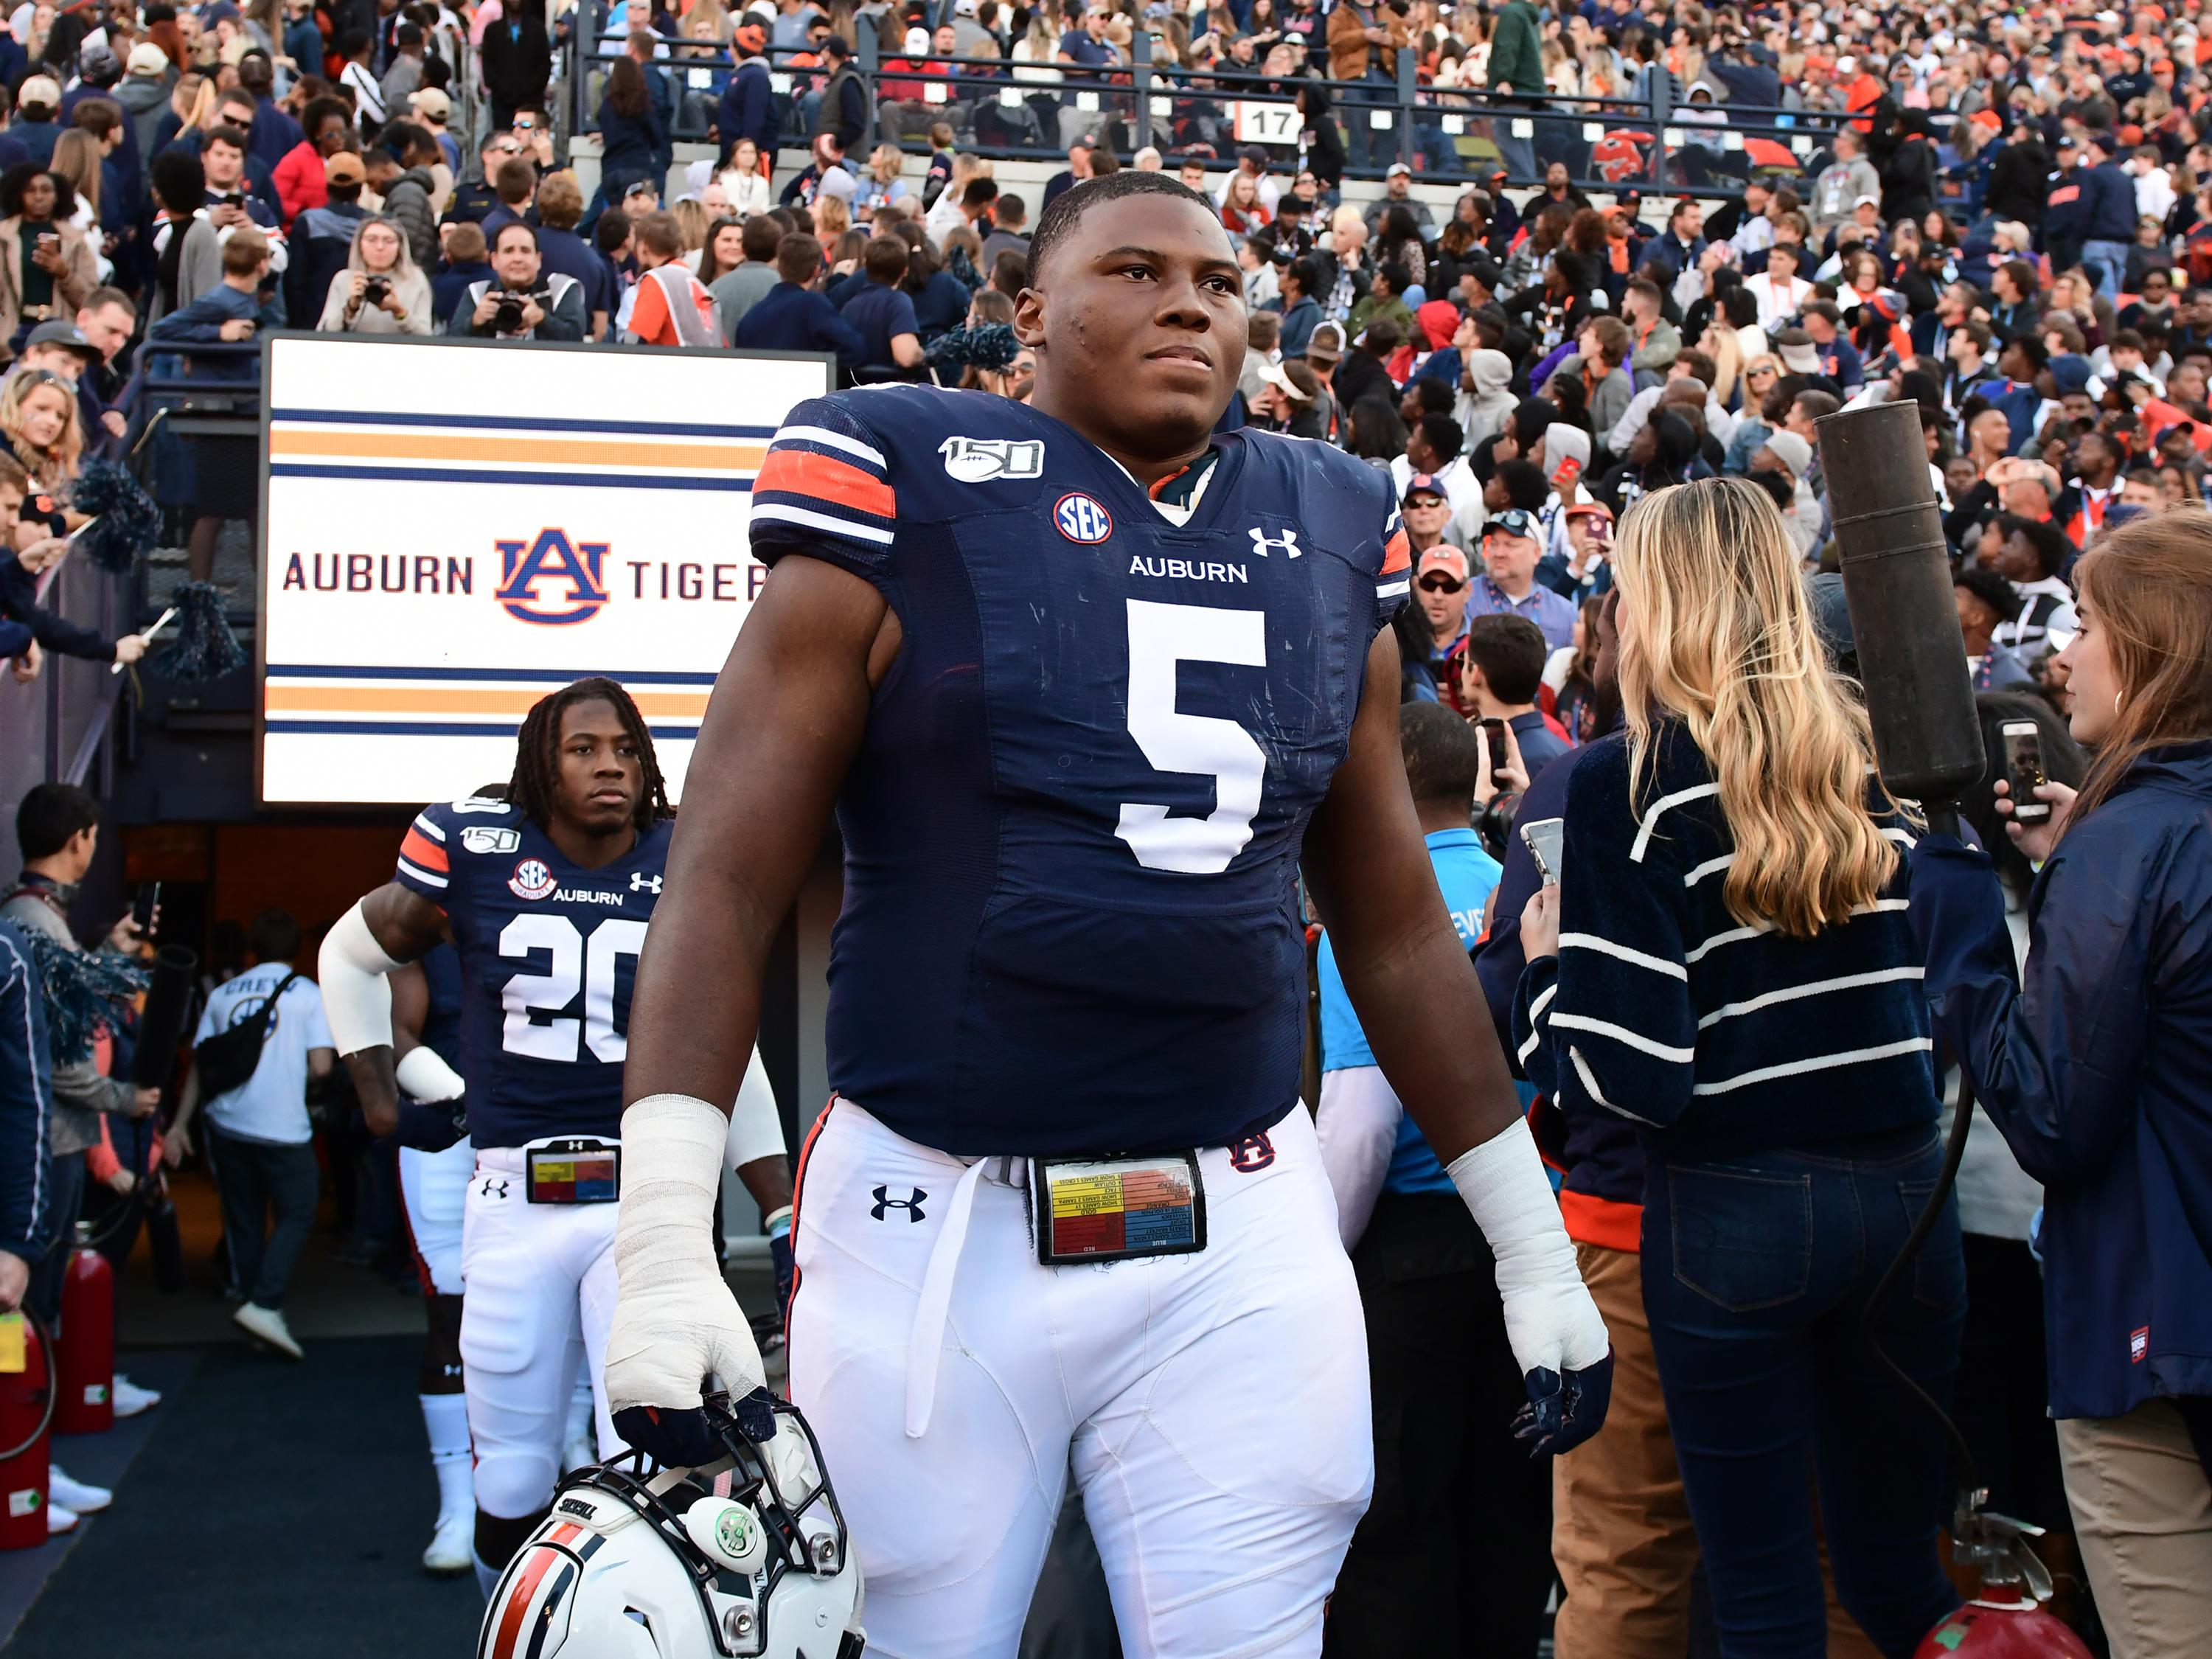 NFL draft winners and losers: Auburn's Derrick Brown shows he's an elite prospect